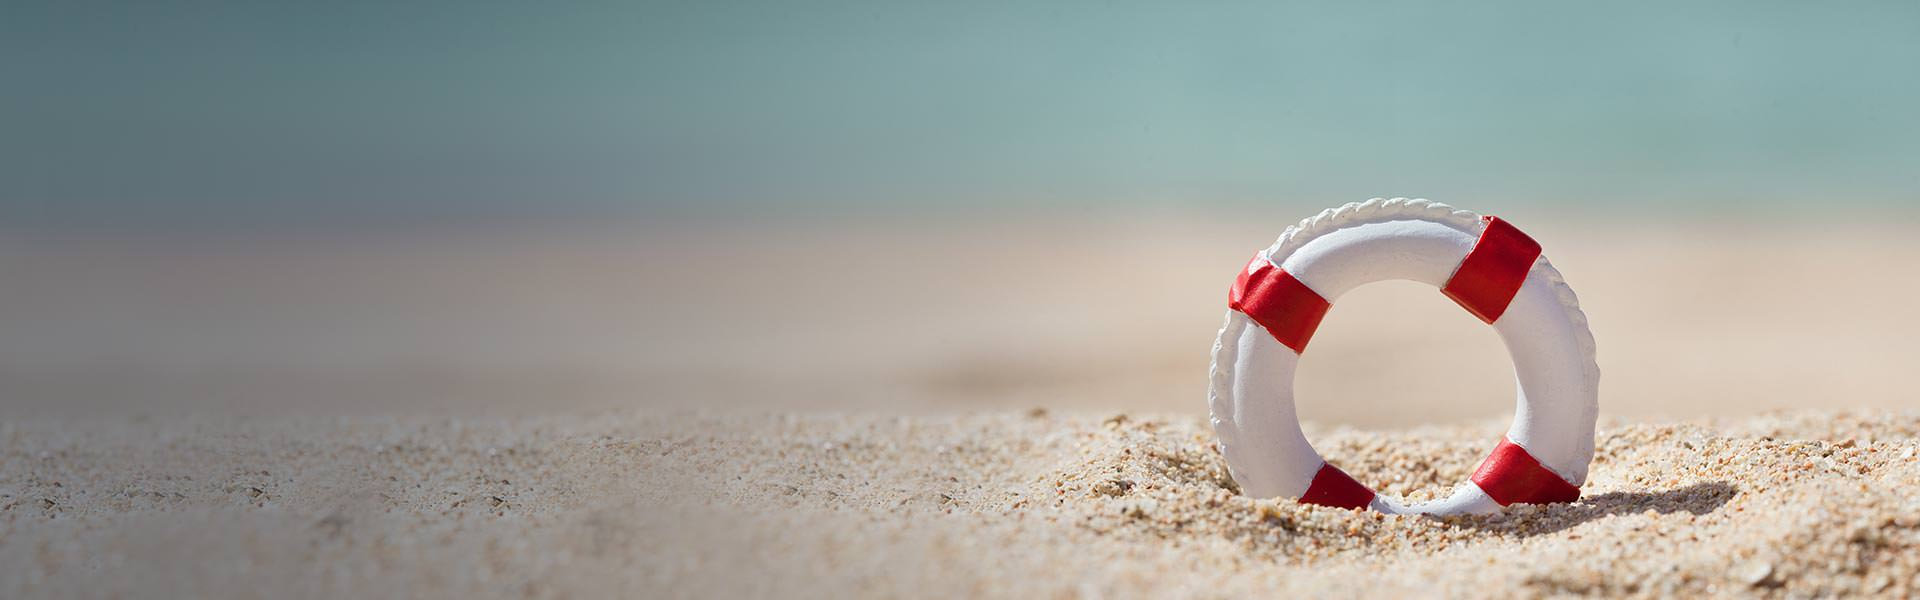 White And Red Lifebuoy Ring On The Beach Offer Help And Support